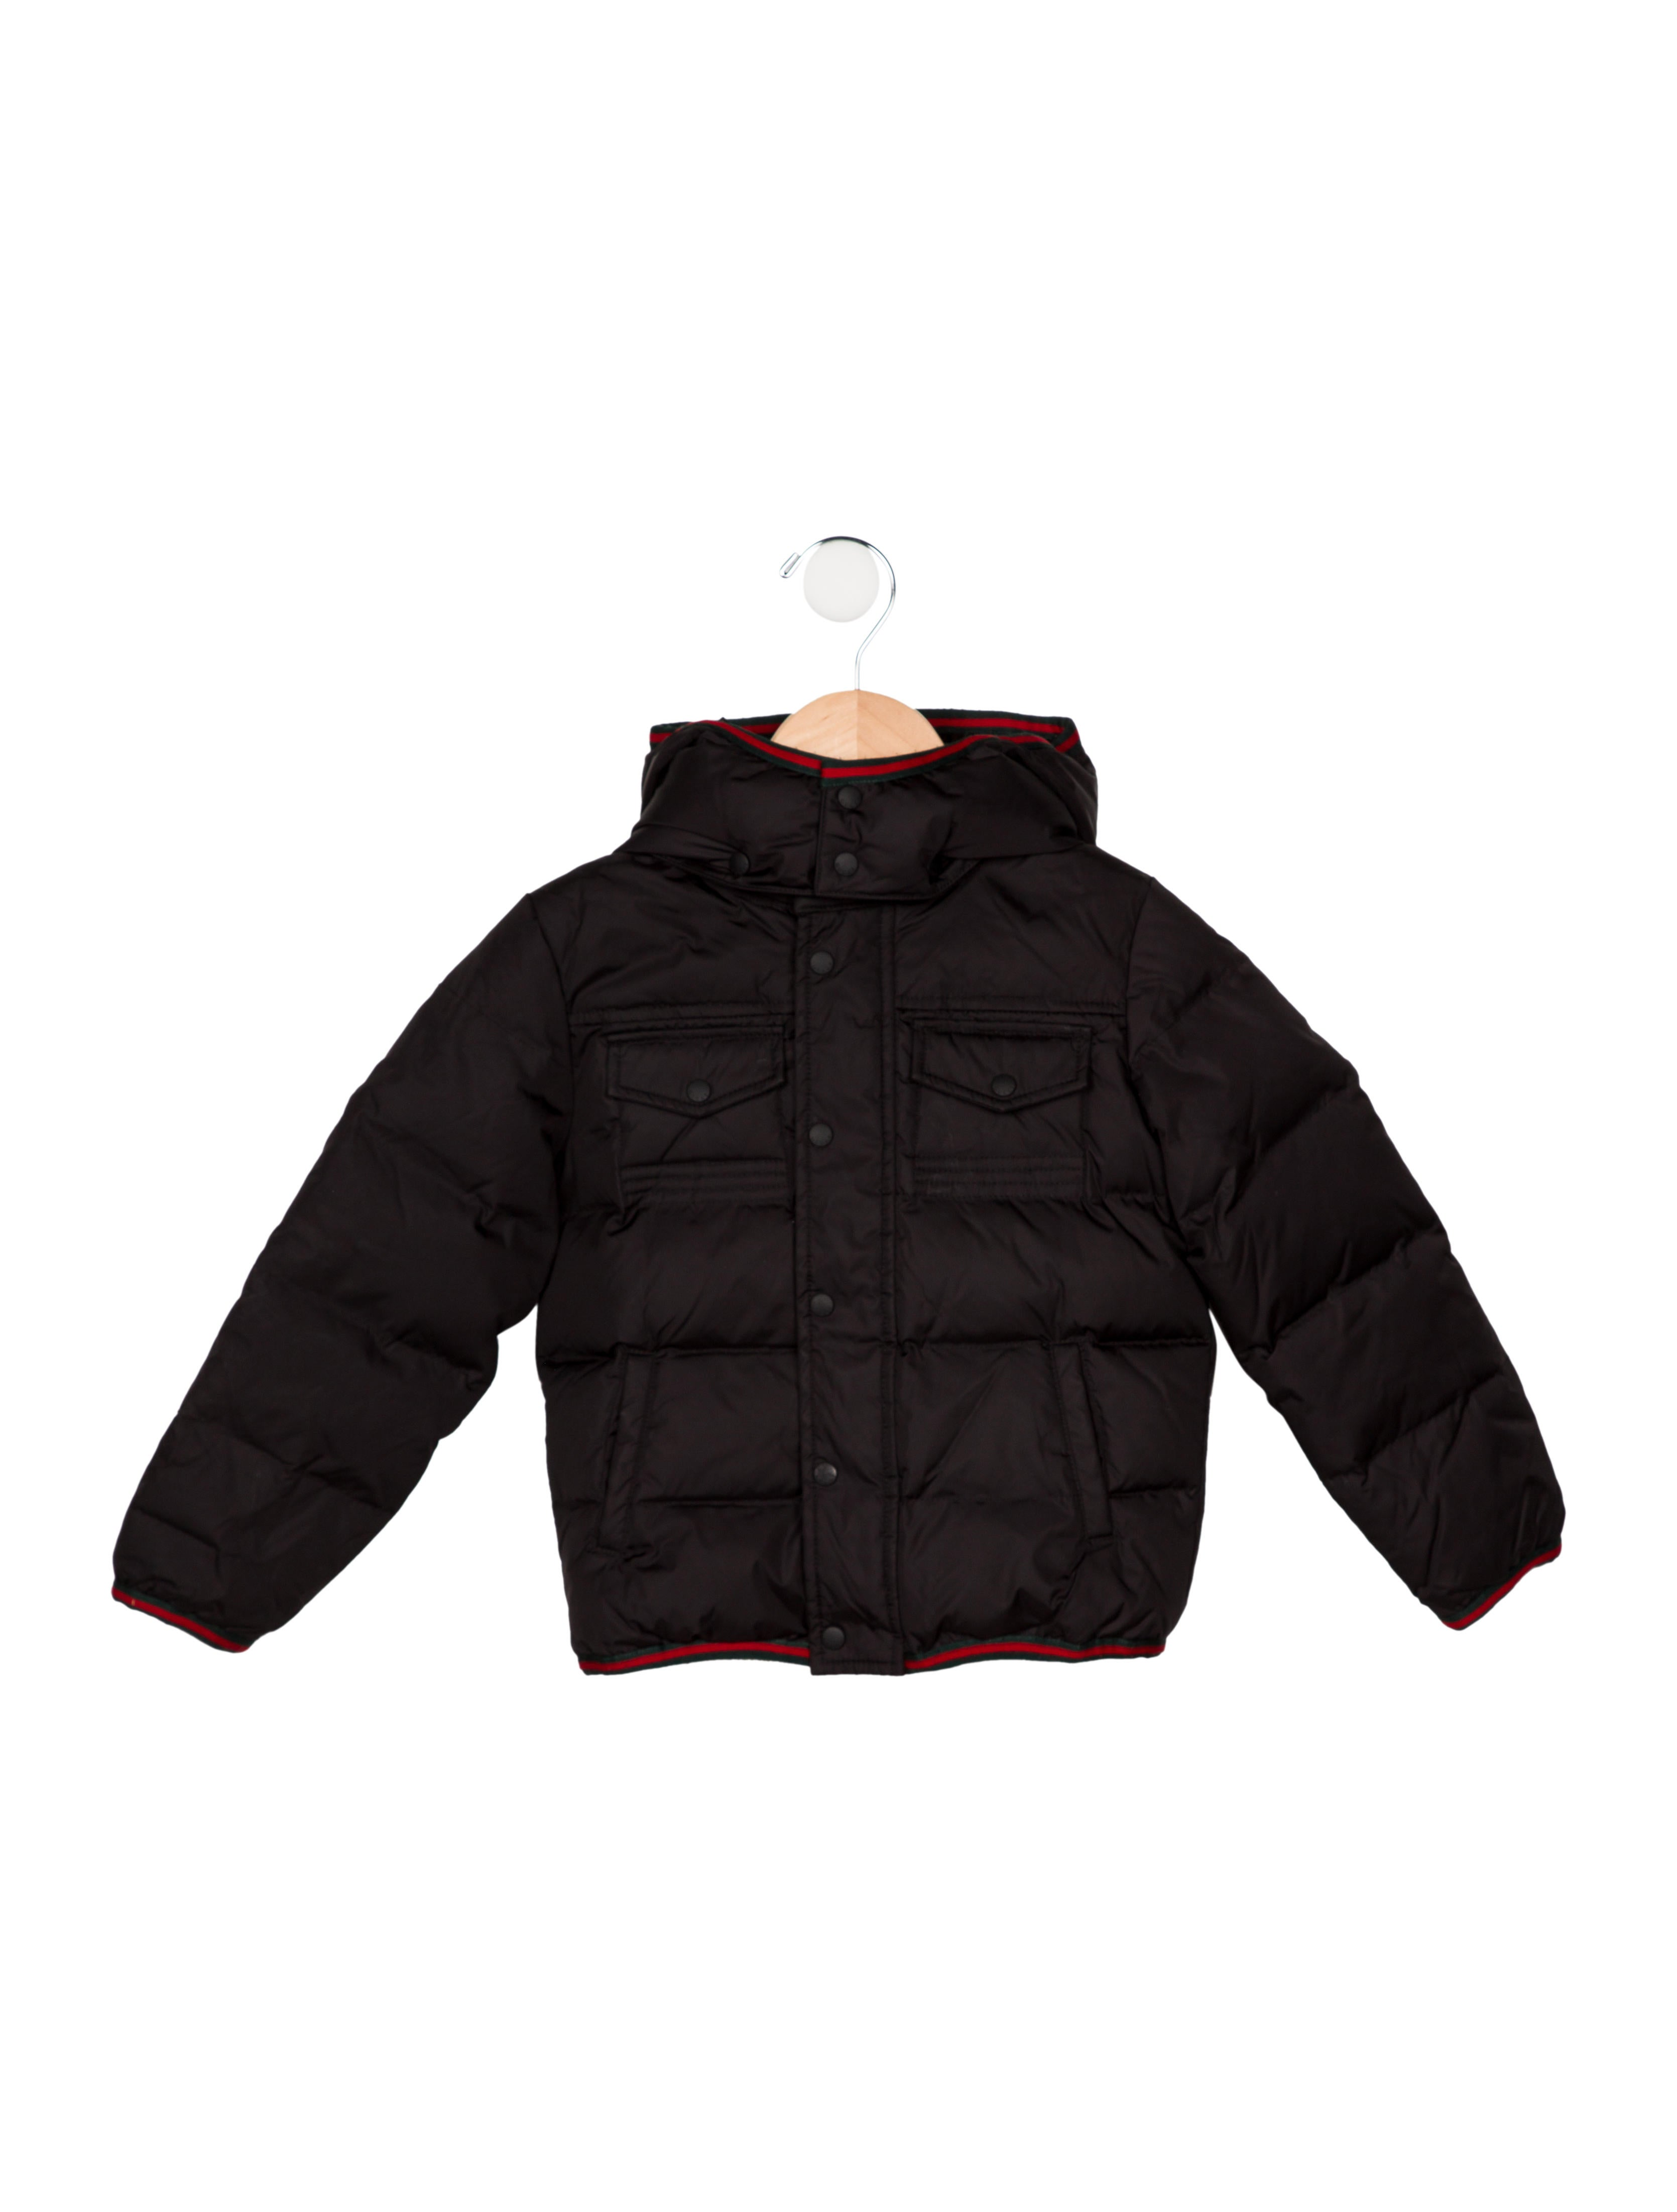 d523b0848 Gucci Boys' Hooded Puffer Coat - Boys - GUC268773 | The RealReal